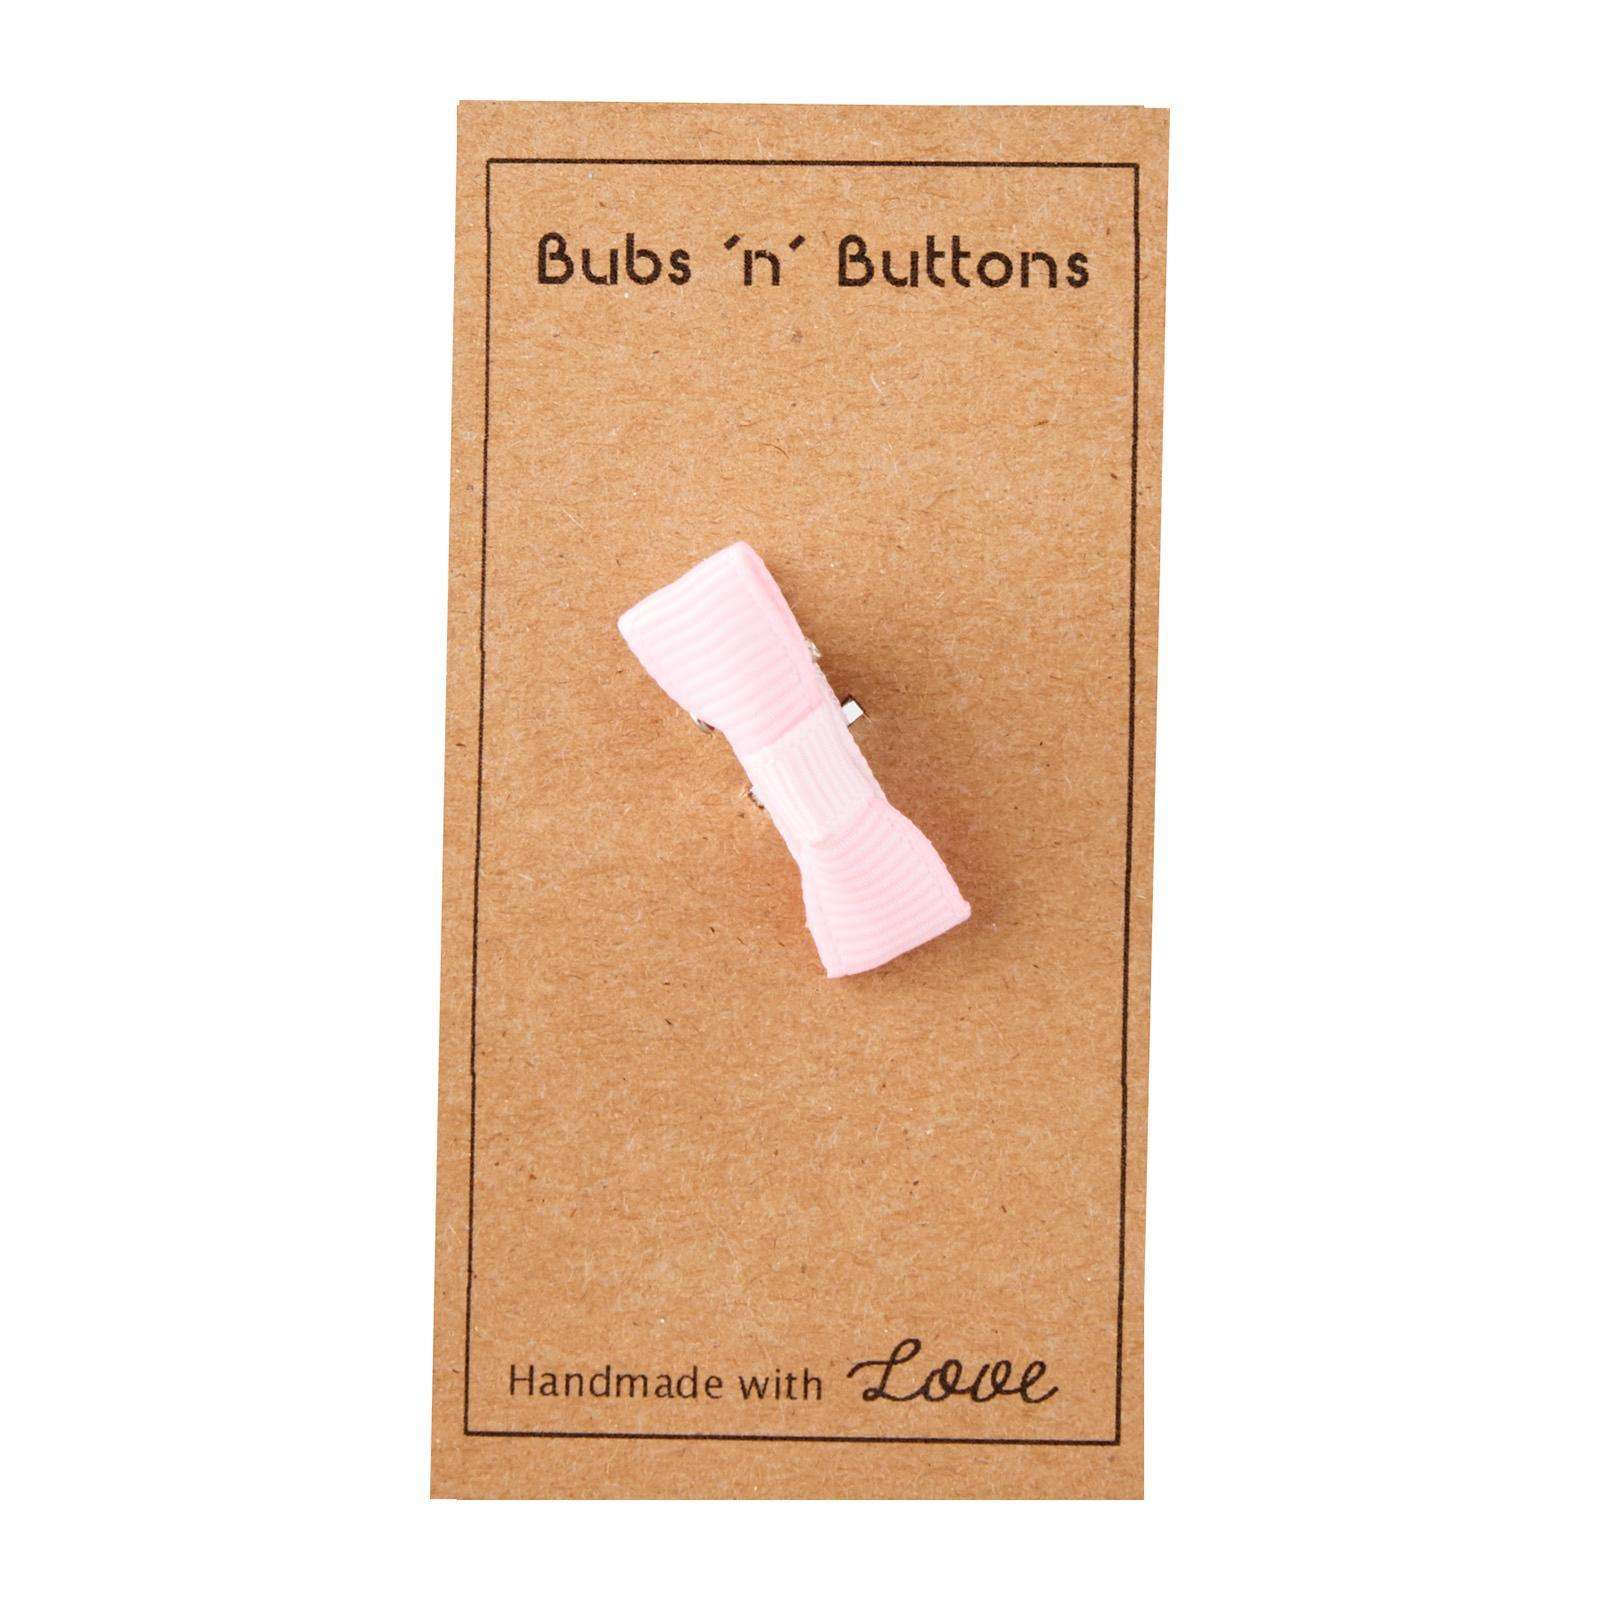 Bubs 'n' Buttons Babes Clippers